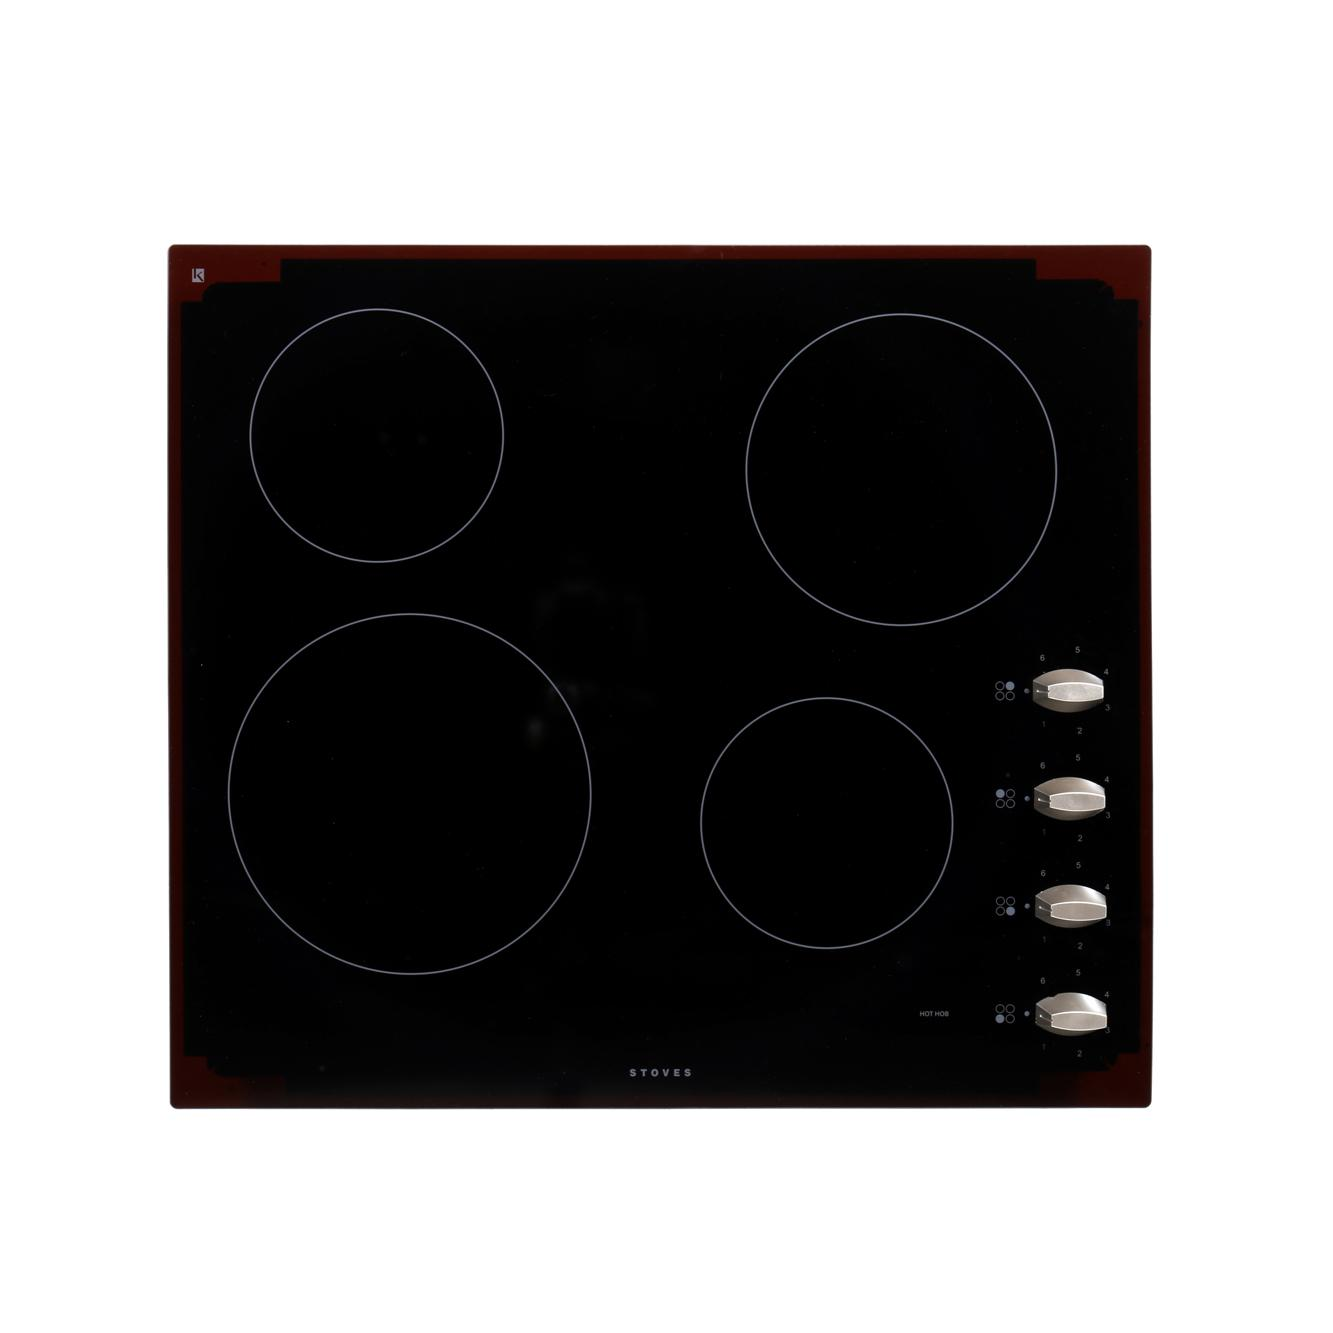 Stoves SEH600CR MK2 Black Ceramic Hob